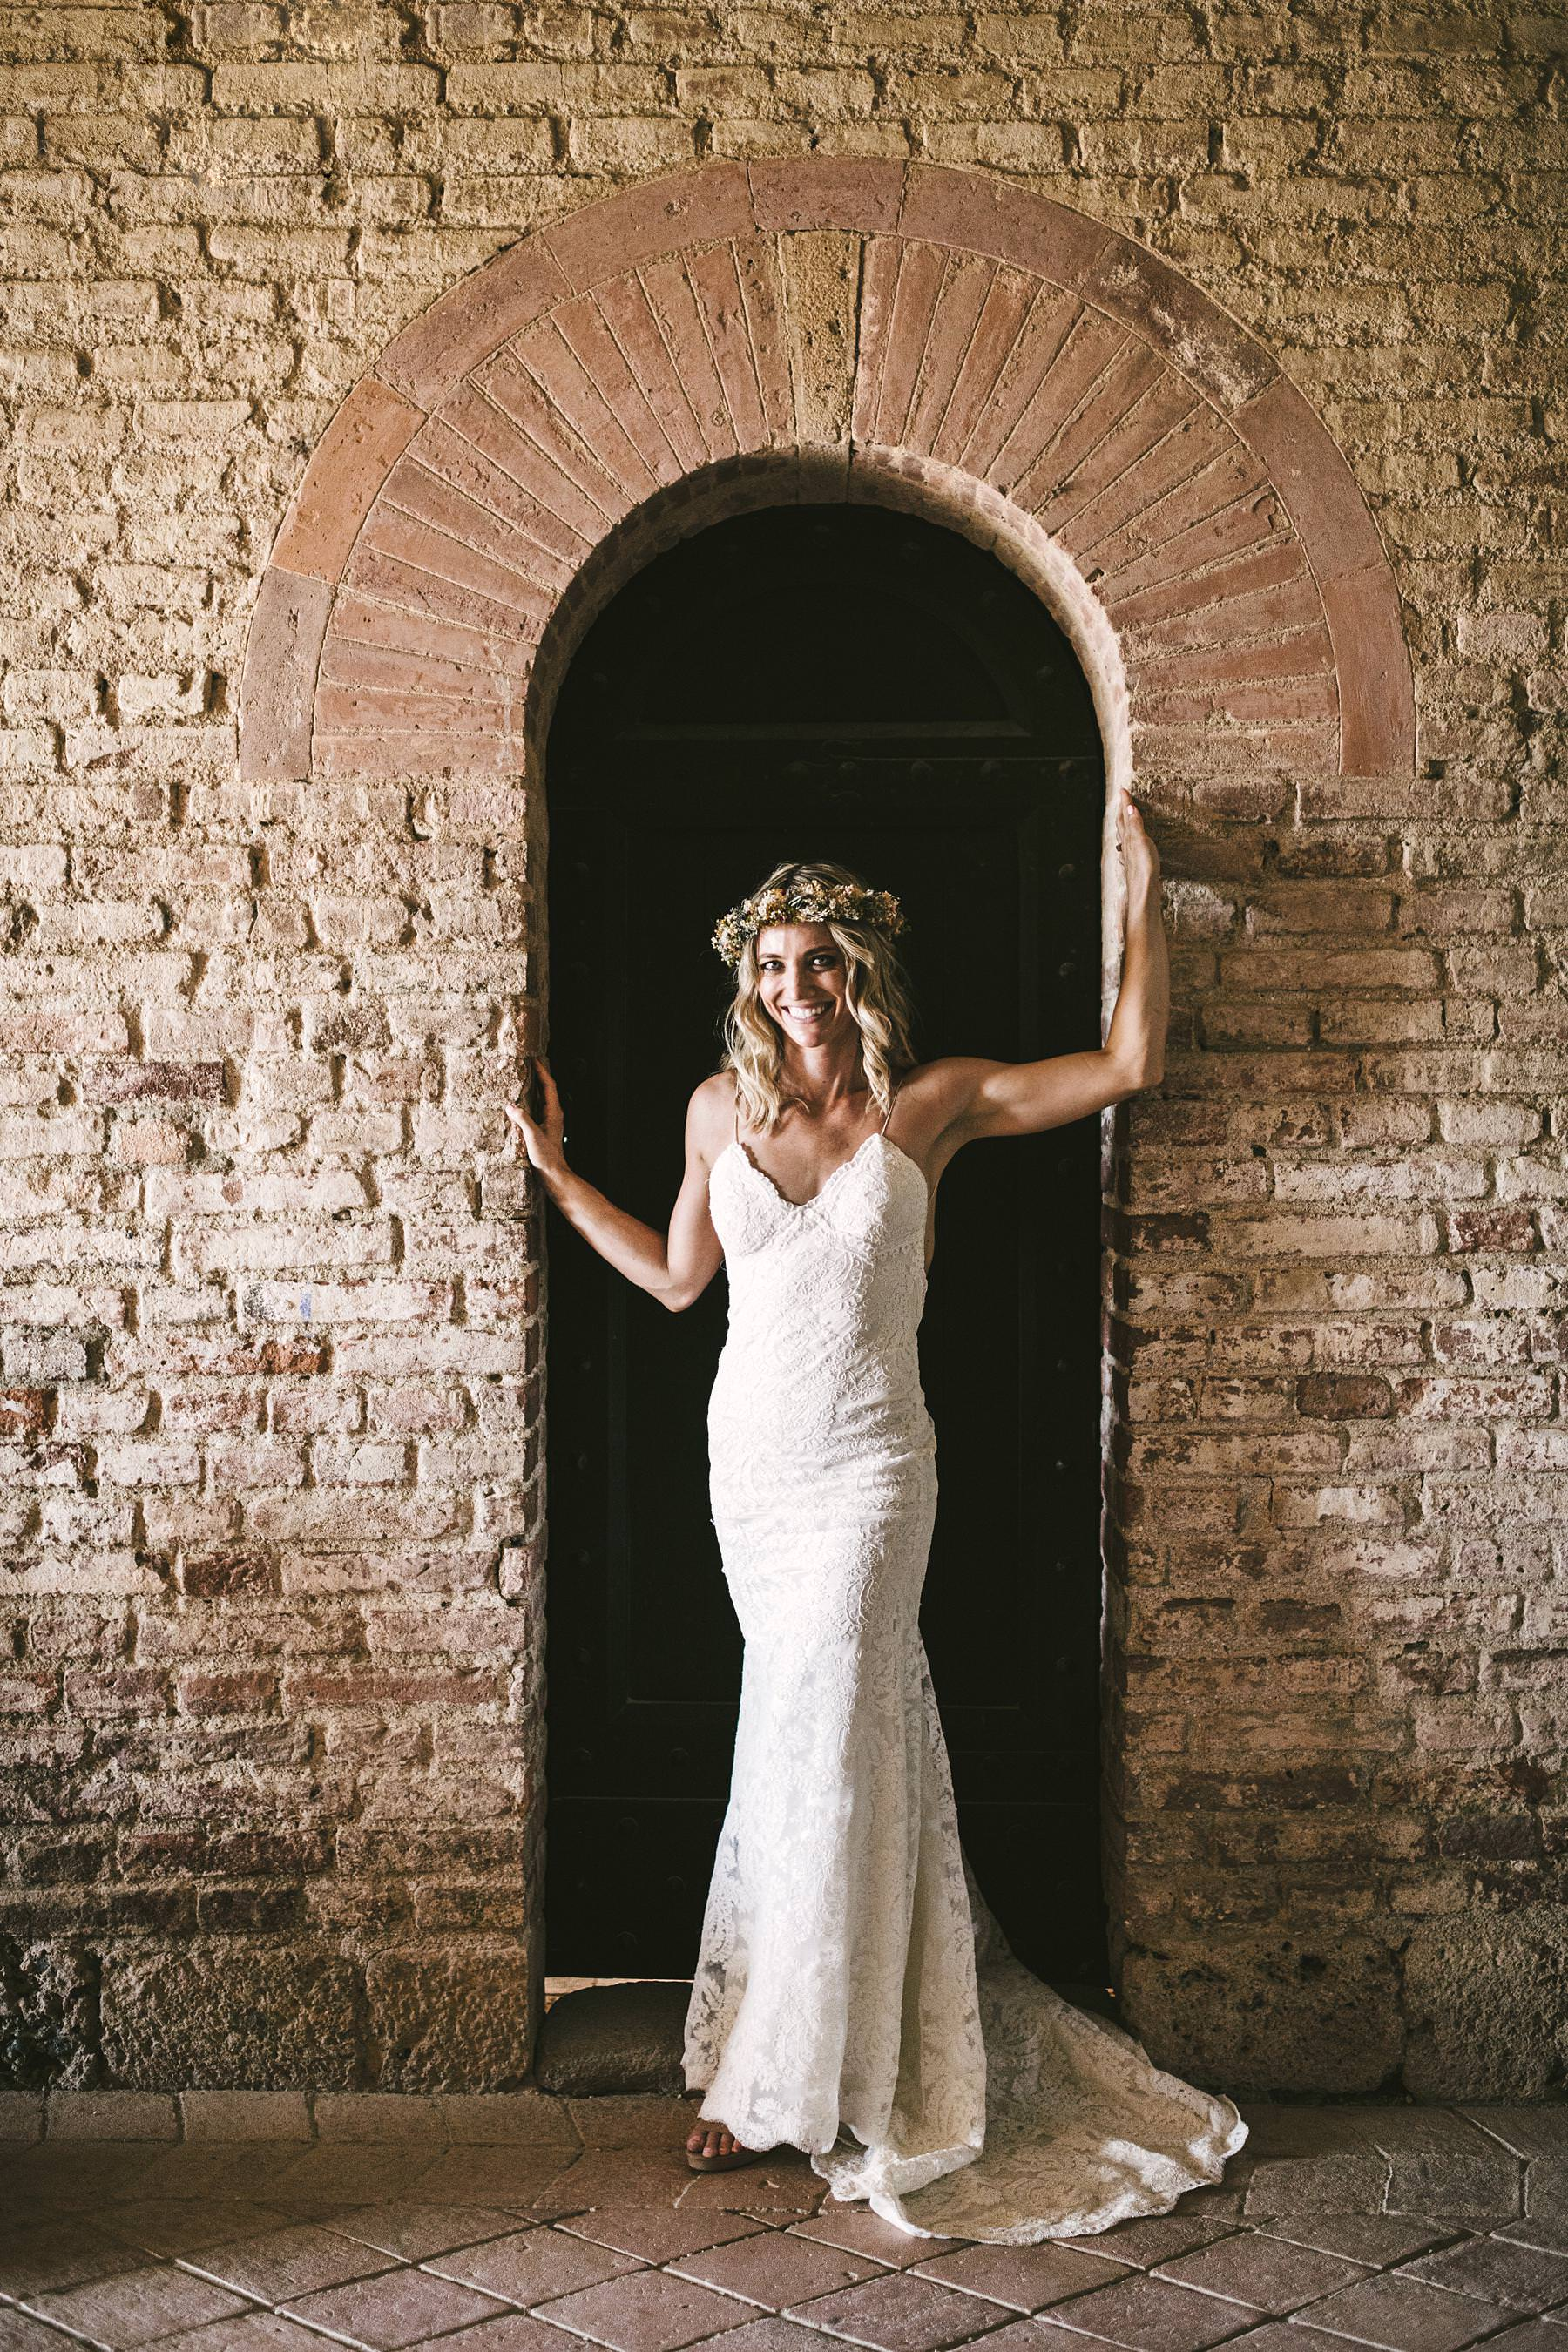 Elegant bride Amelia in Katie May wedding gown at Roofless Abbey of San Galgano. Intimate destination Italian civil marriage